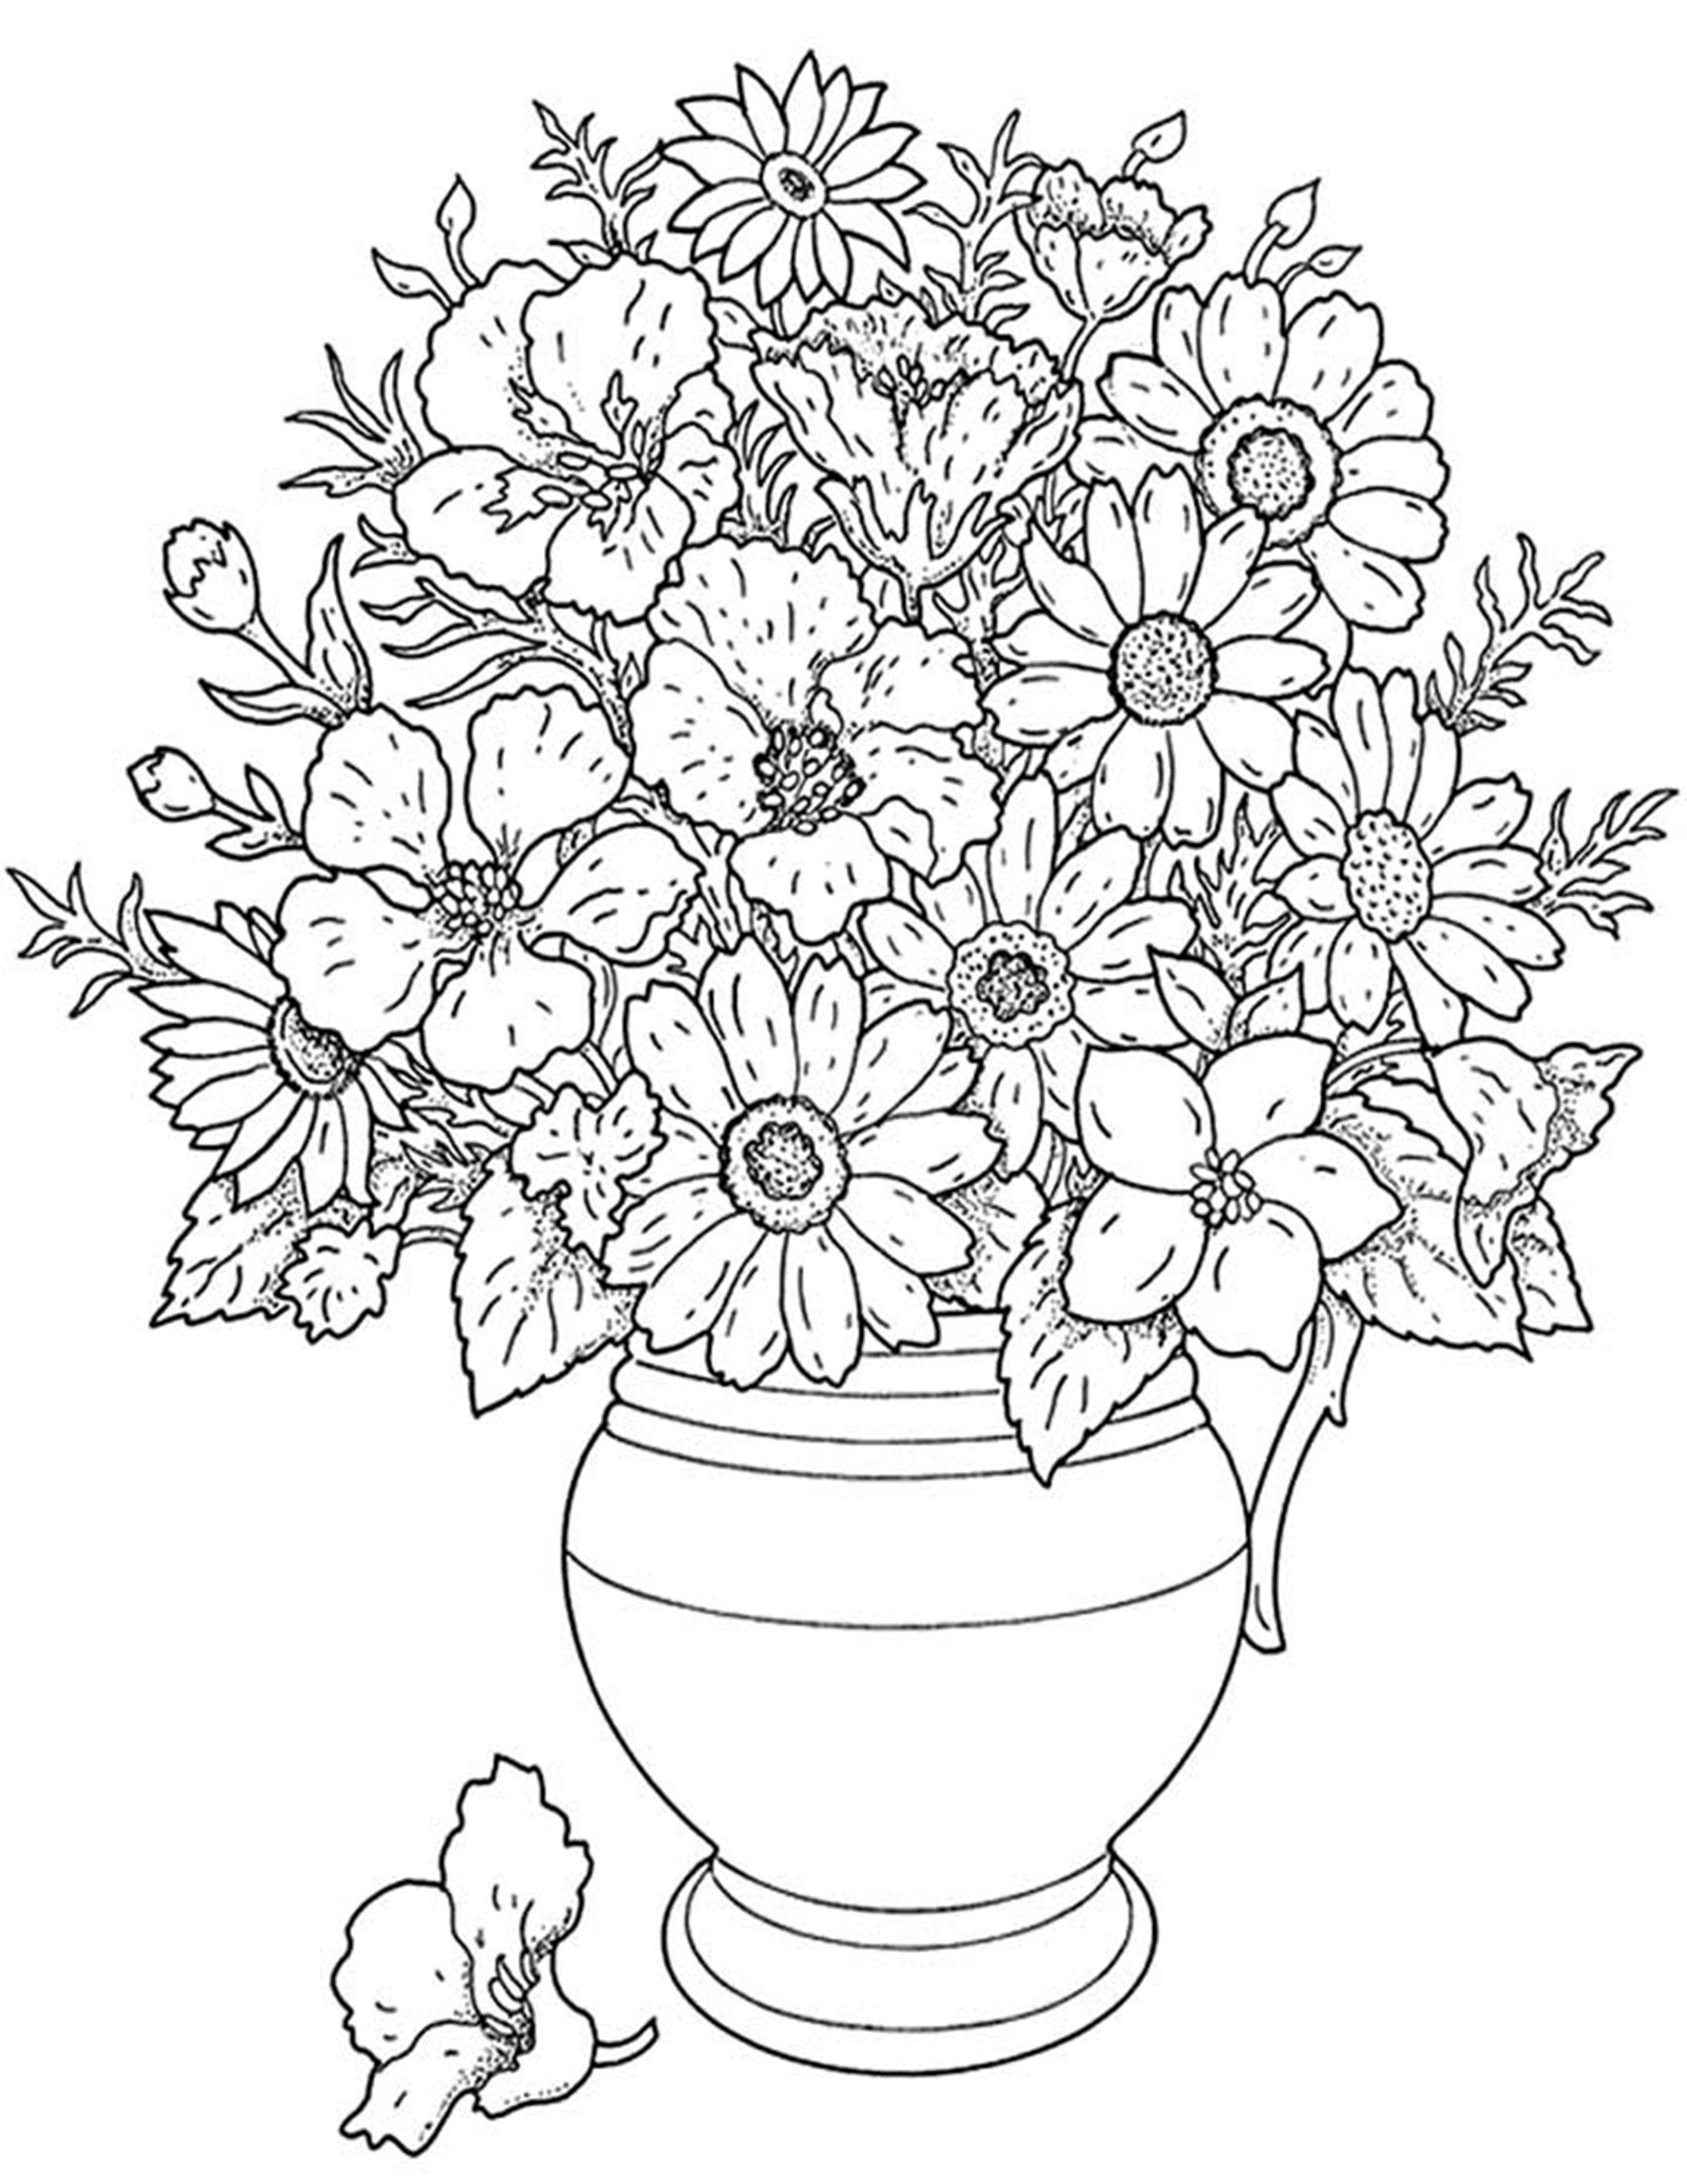 pictures of flowers to color free download to print beautiful spring flower coloring to of color pictures flowers